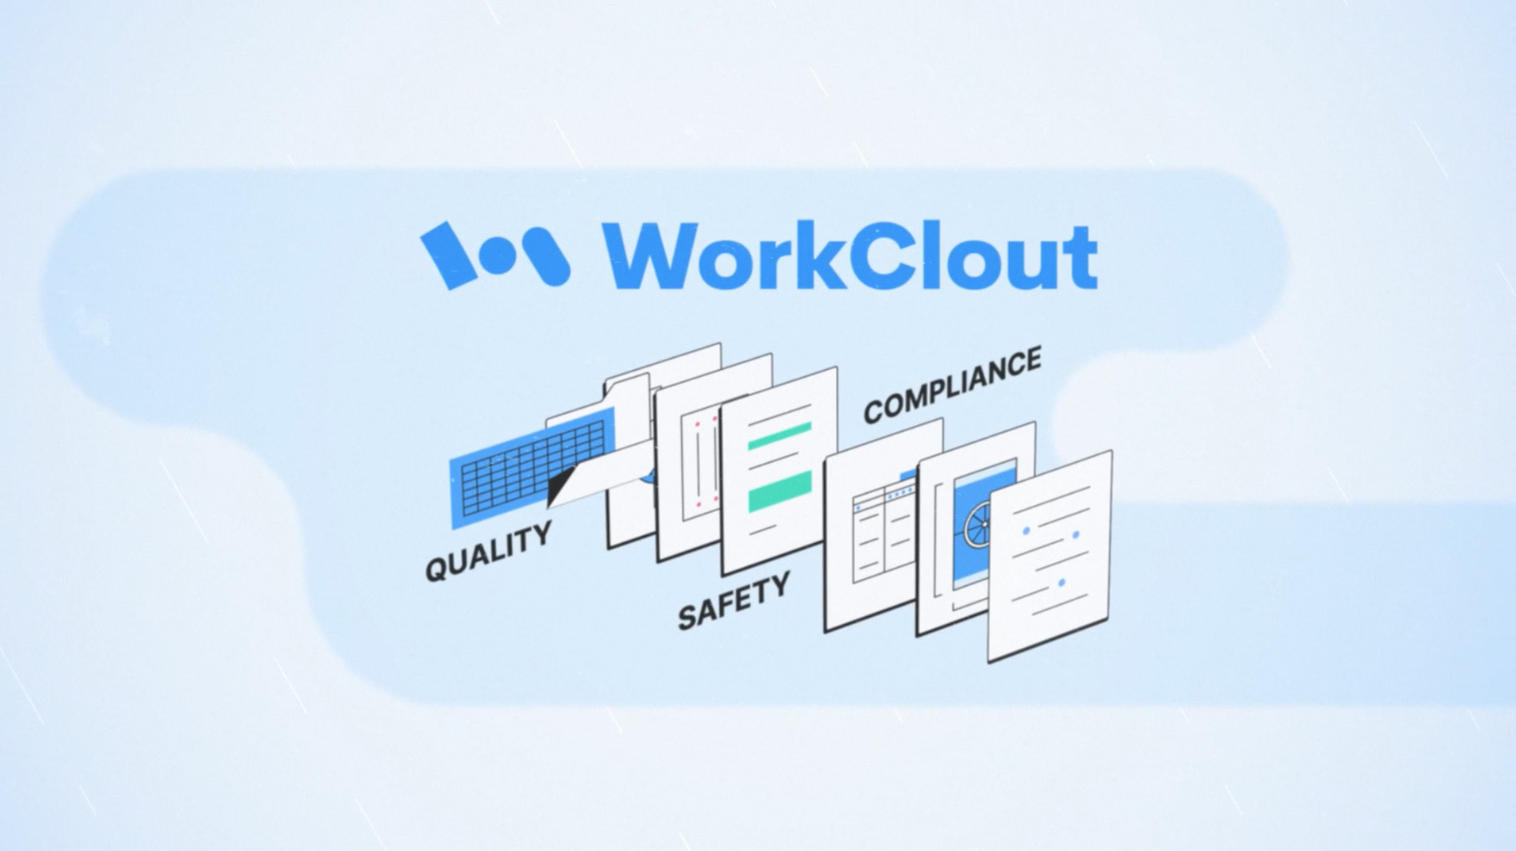 WorkClout Quality & Safety 4.0